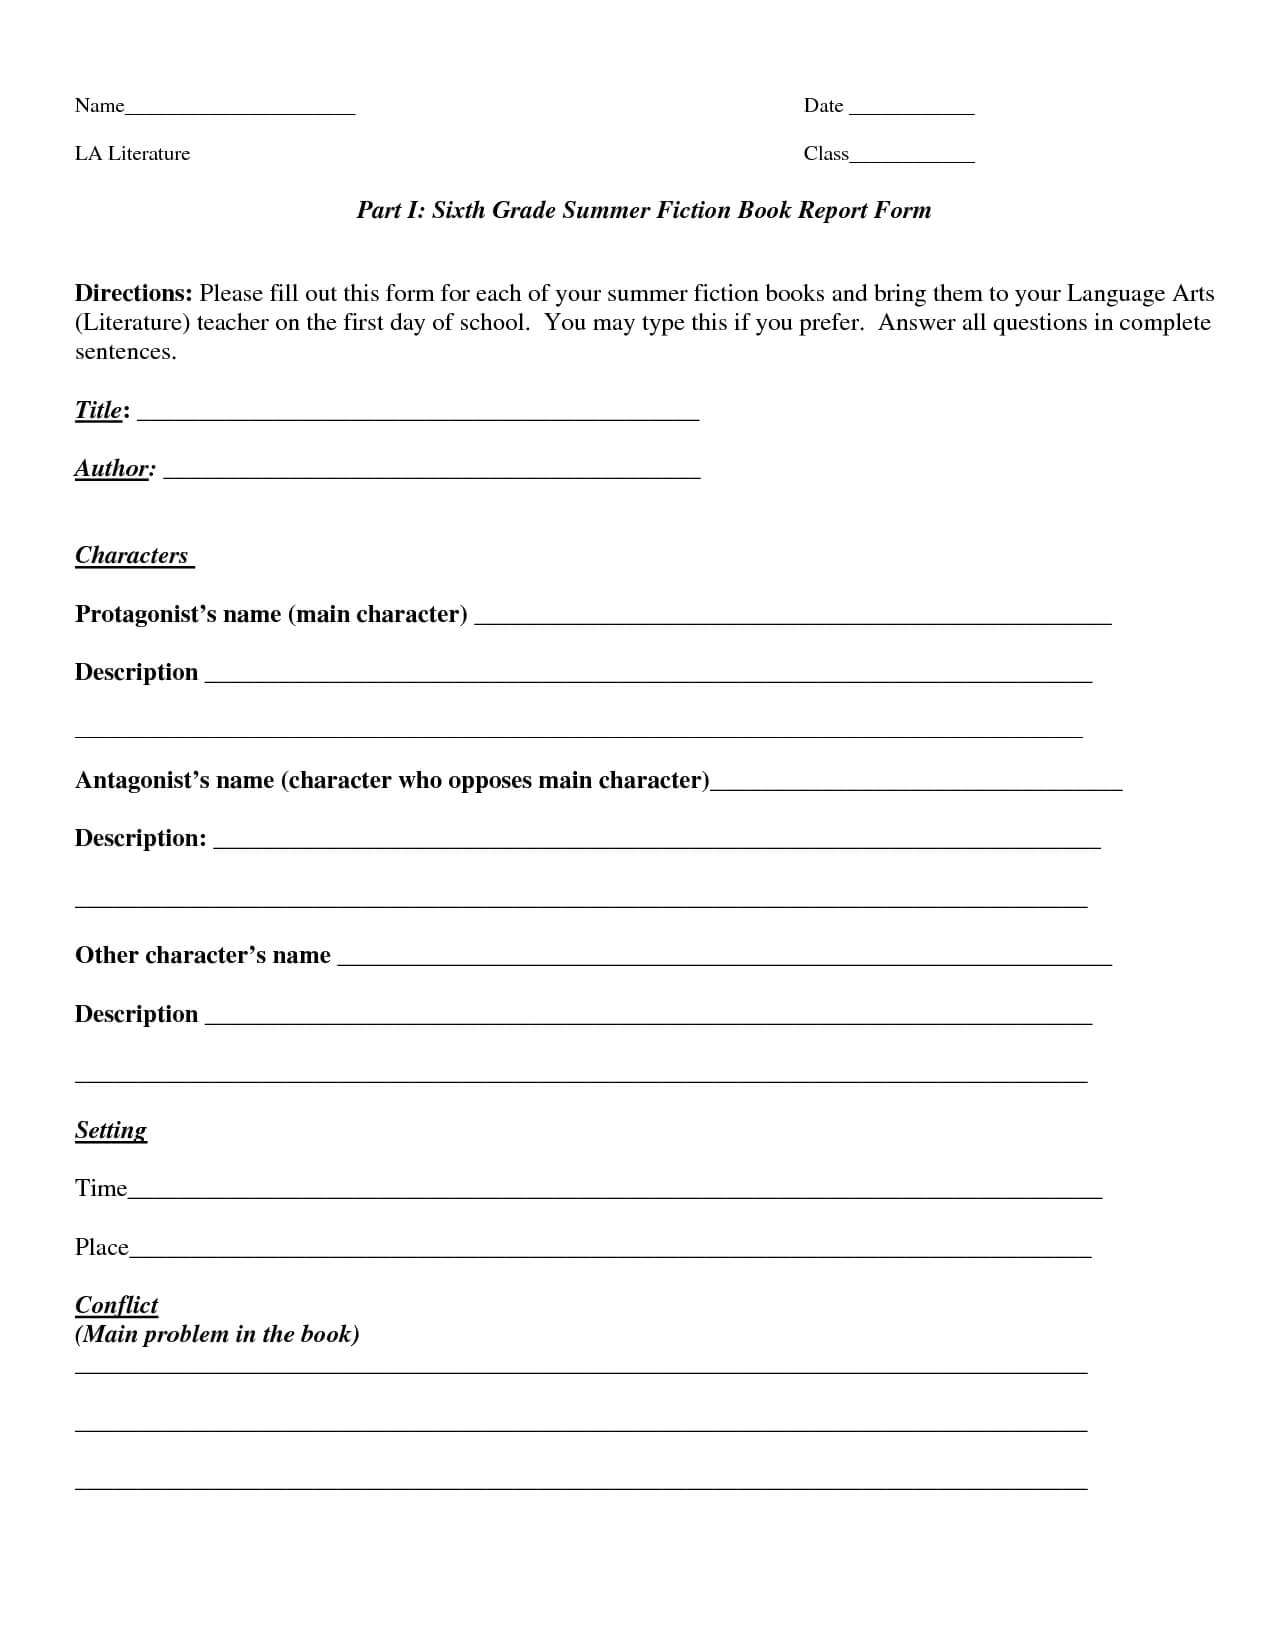 Book Report Template | Part I Sixth Grade Summer Fiction regarding Book Report Template Grade 1